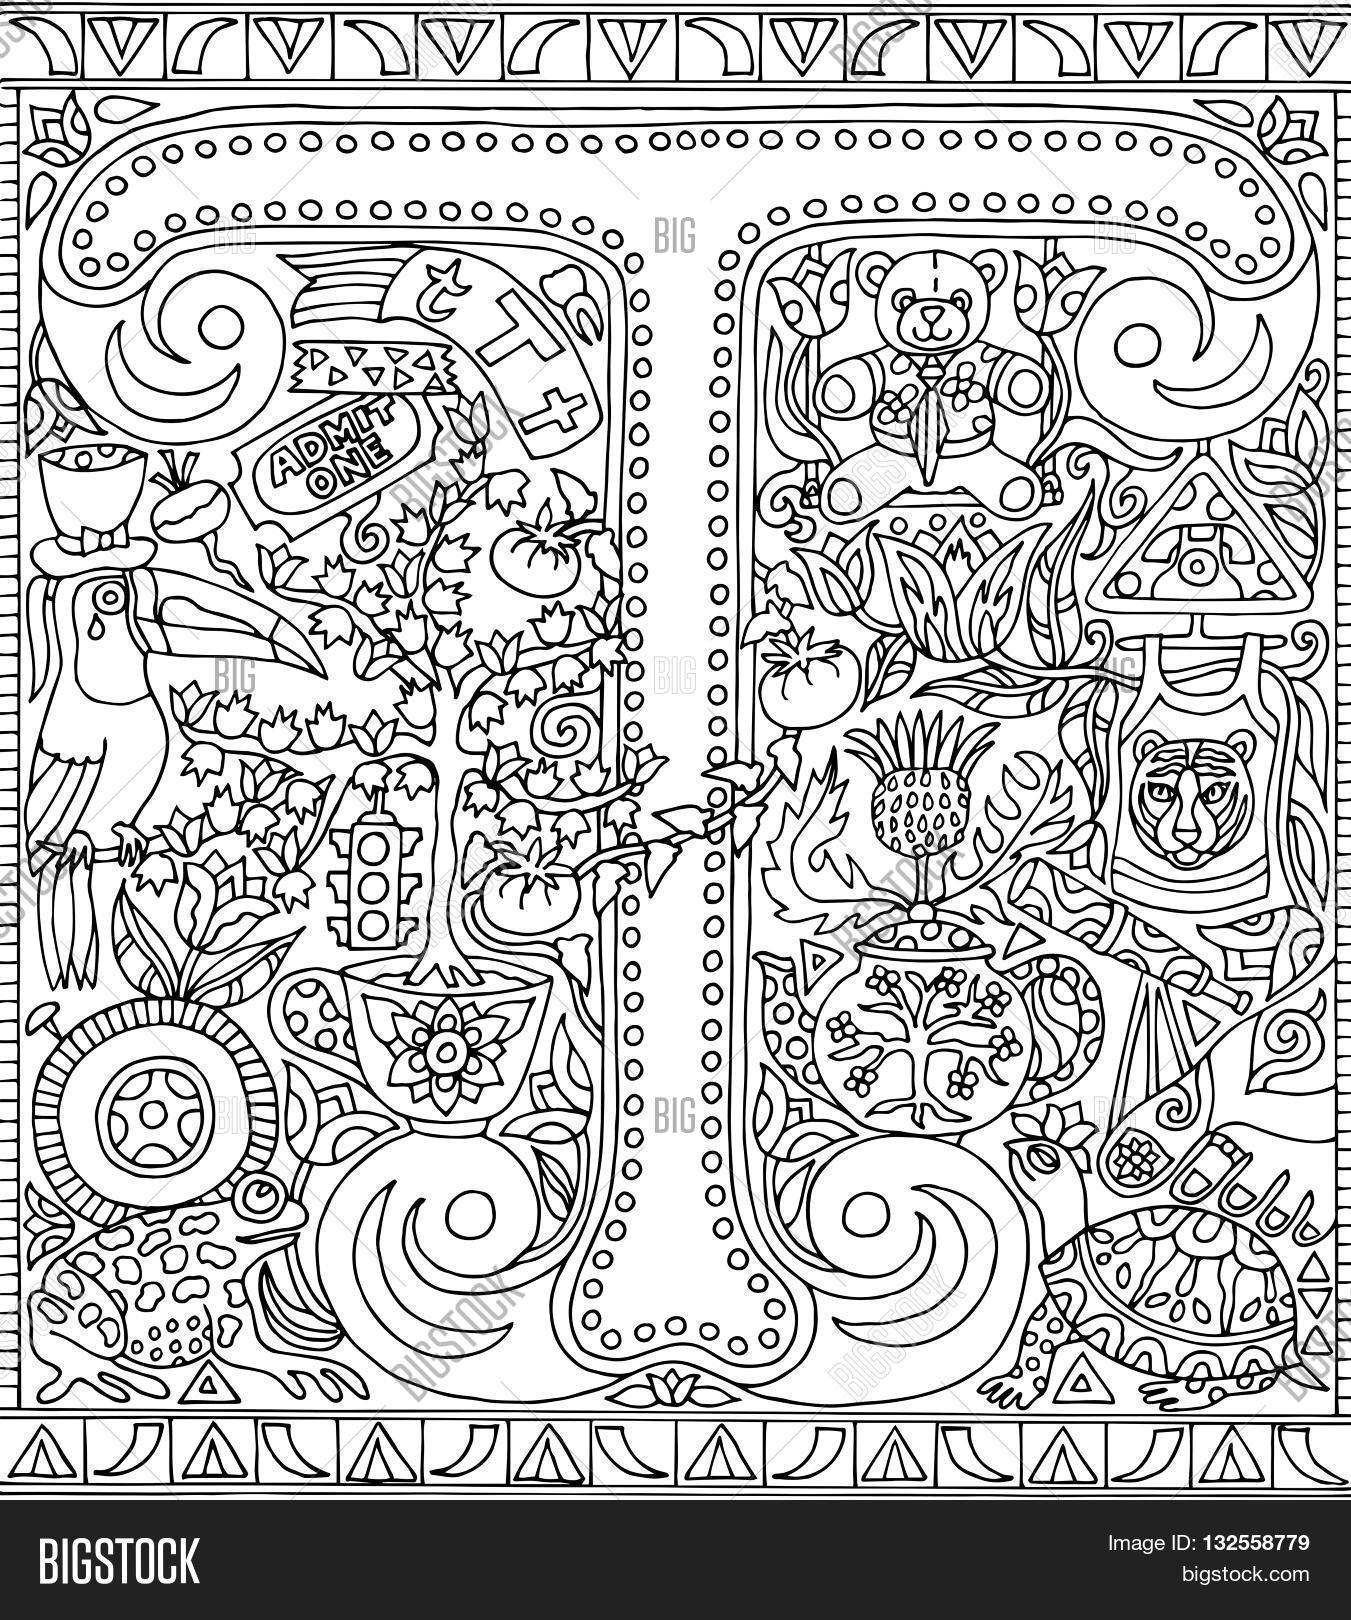 The coloring book poster - Adult Coloring Book Poster Alphabet Letter T Black And White Vector Illustration